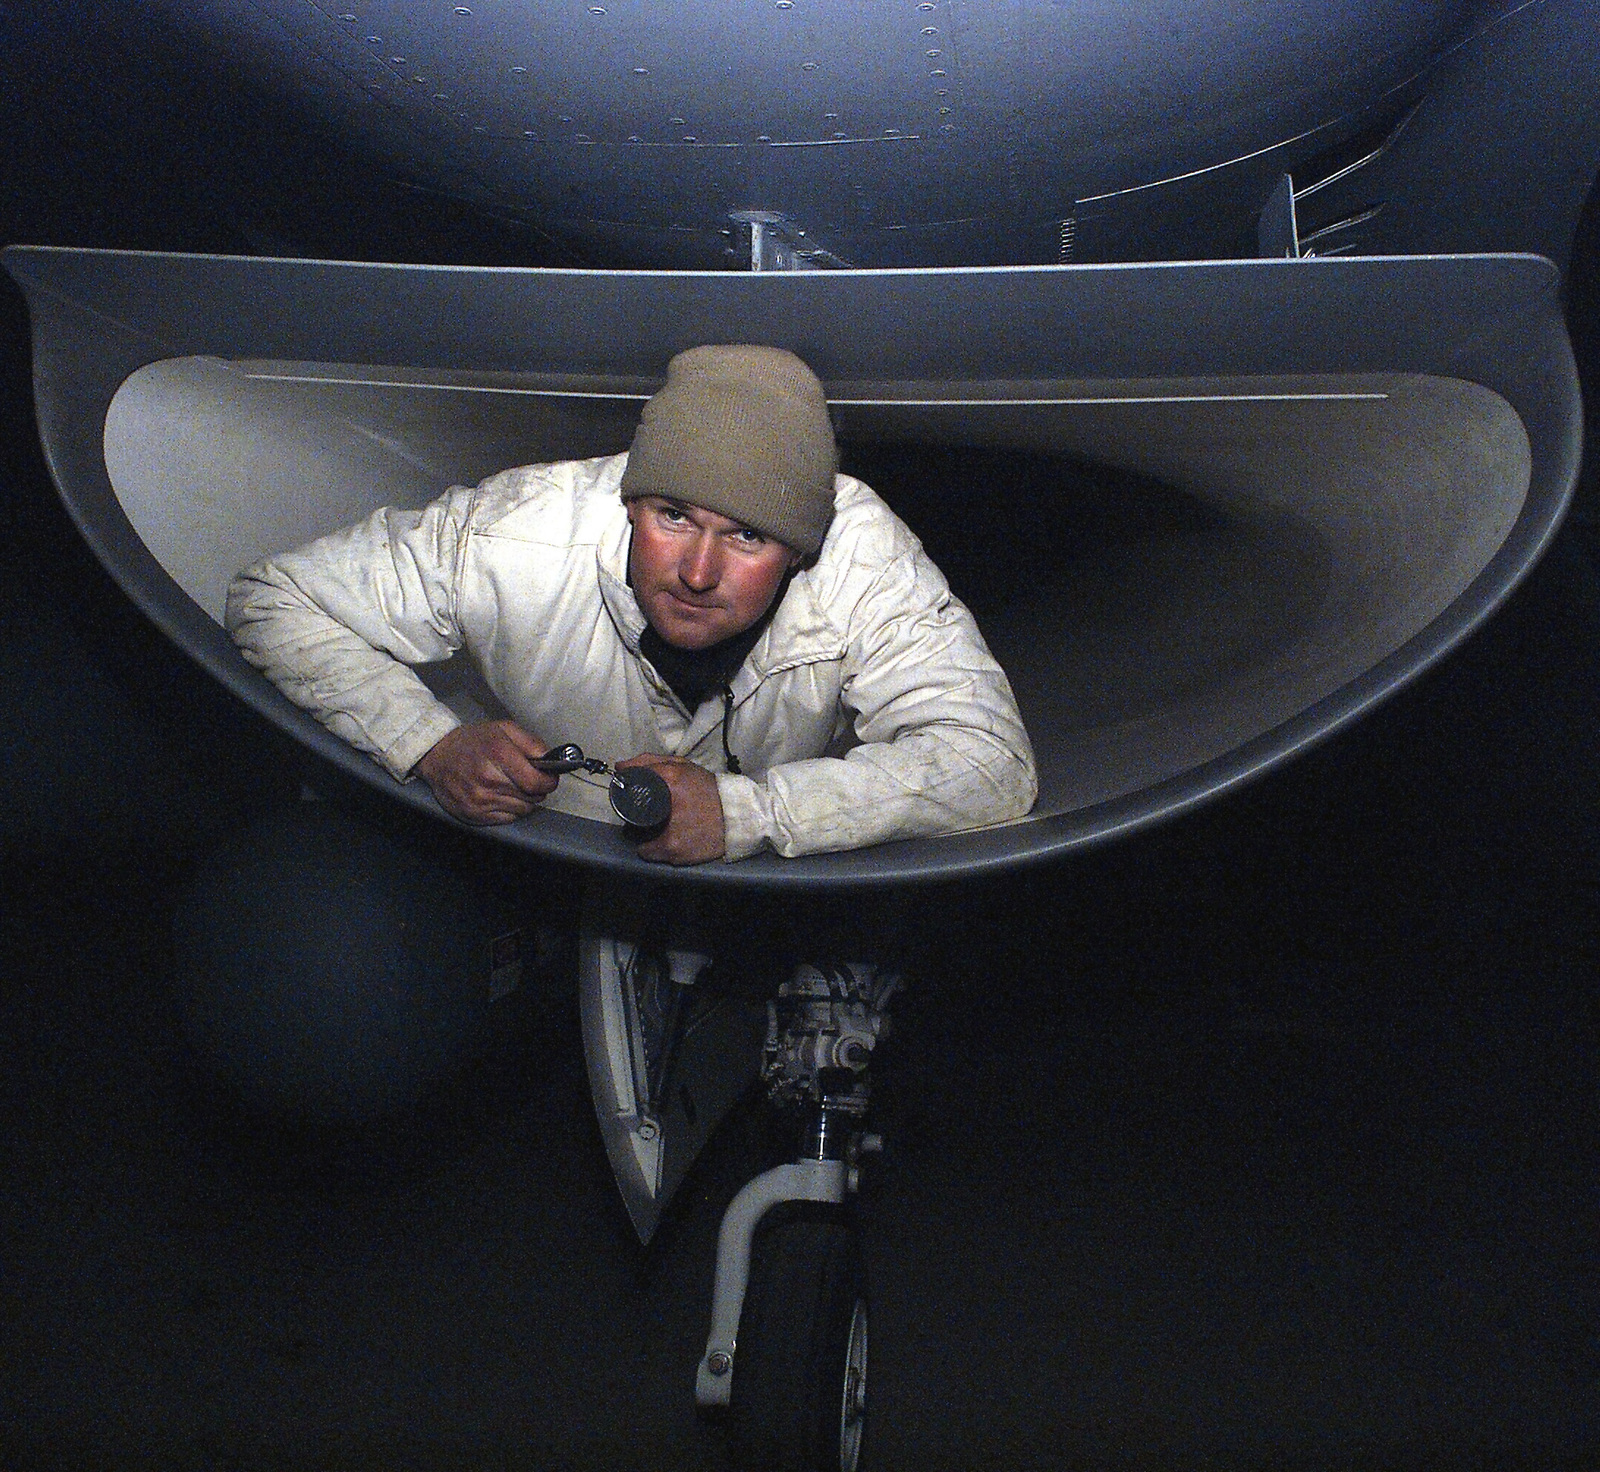 A US Air Force (USAF) 410th Air Expeditionary Wing (AEW) maintenance member surfaces from the inside of the F-16 Fighting Falcon intake after inspecting the fan blades during Operation ENDURING FREEDOM at a forward deployed location